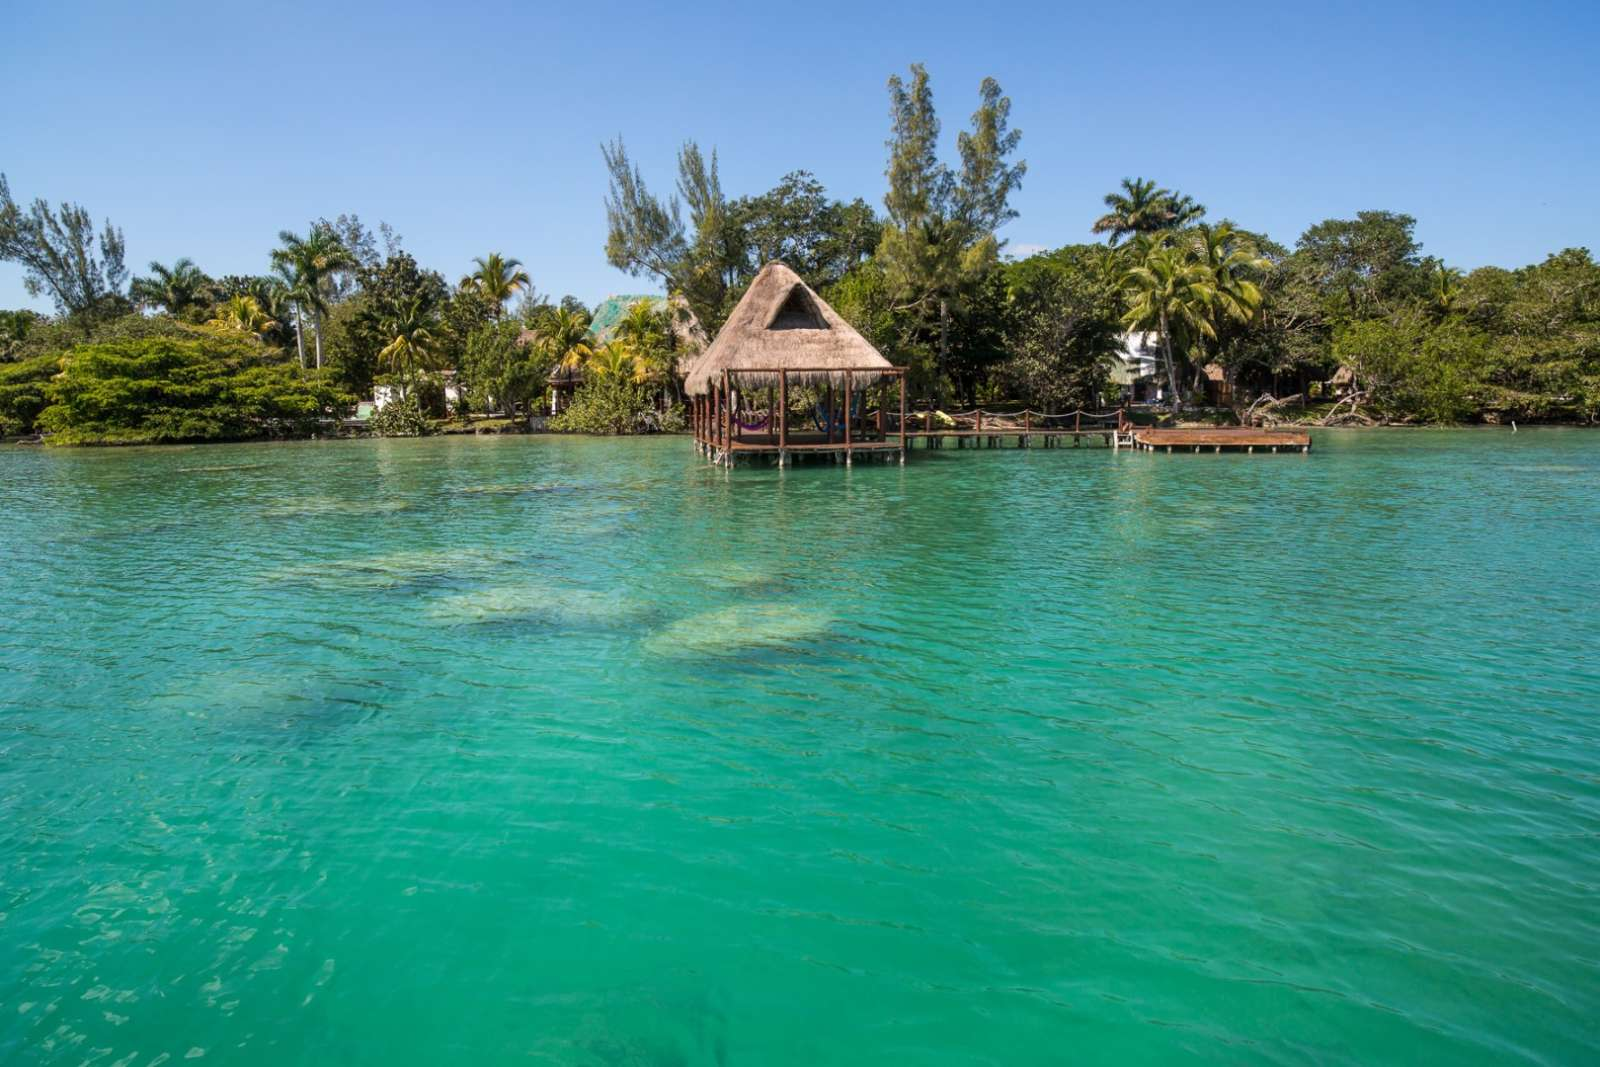 Lake view of Rancho Encantado Bacalar